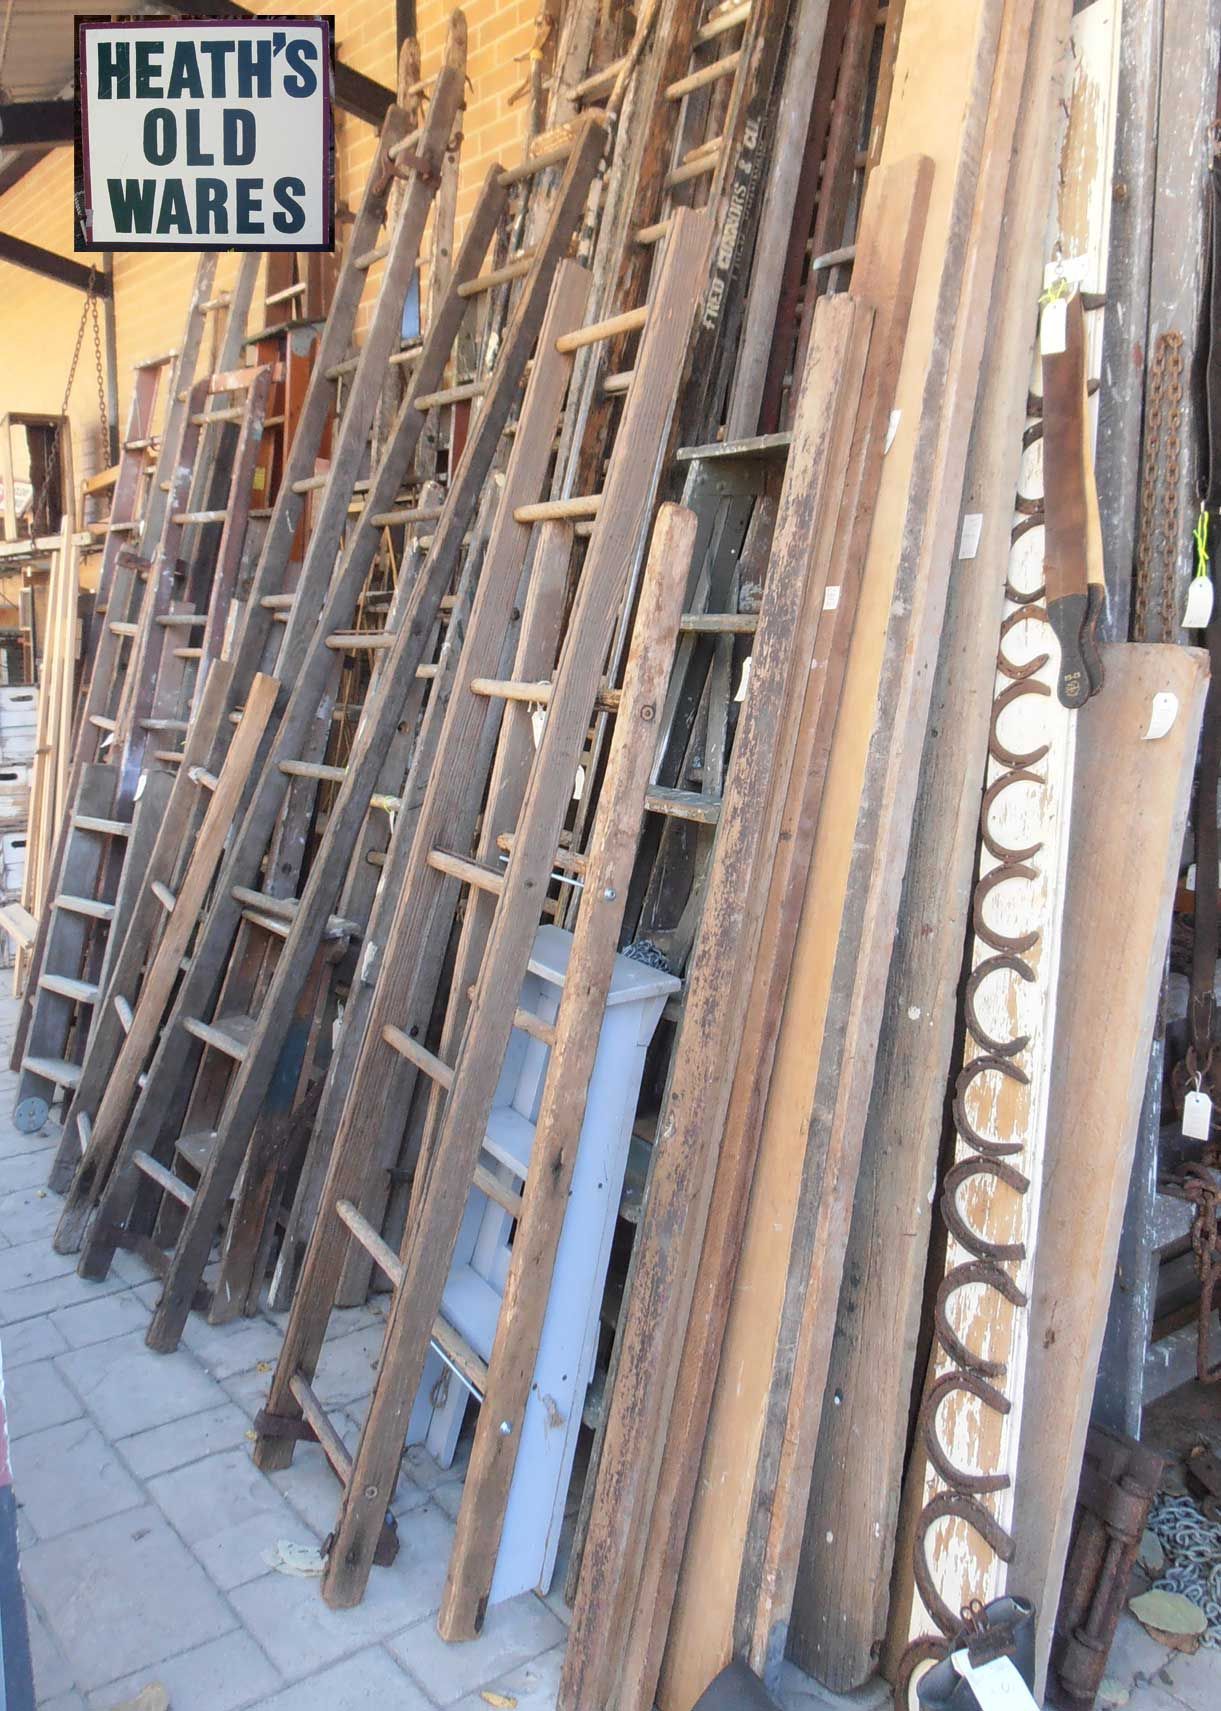 Antique And Vintage Ladders For Sale At Heaths Antiques Bangalow Wooden Ladder Vintage Ladder Antiques